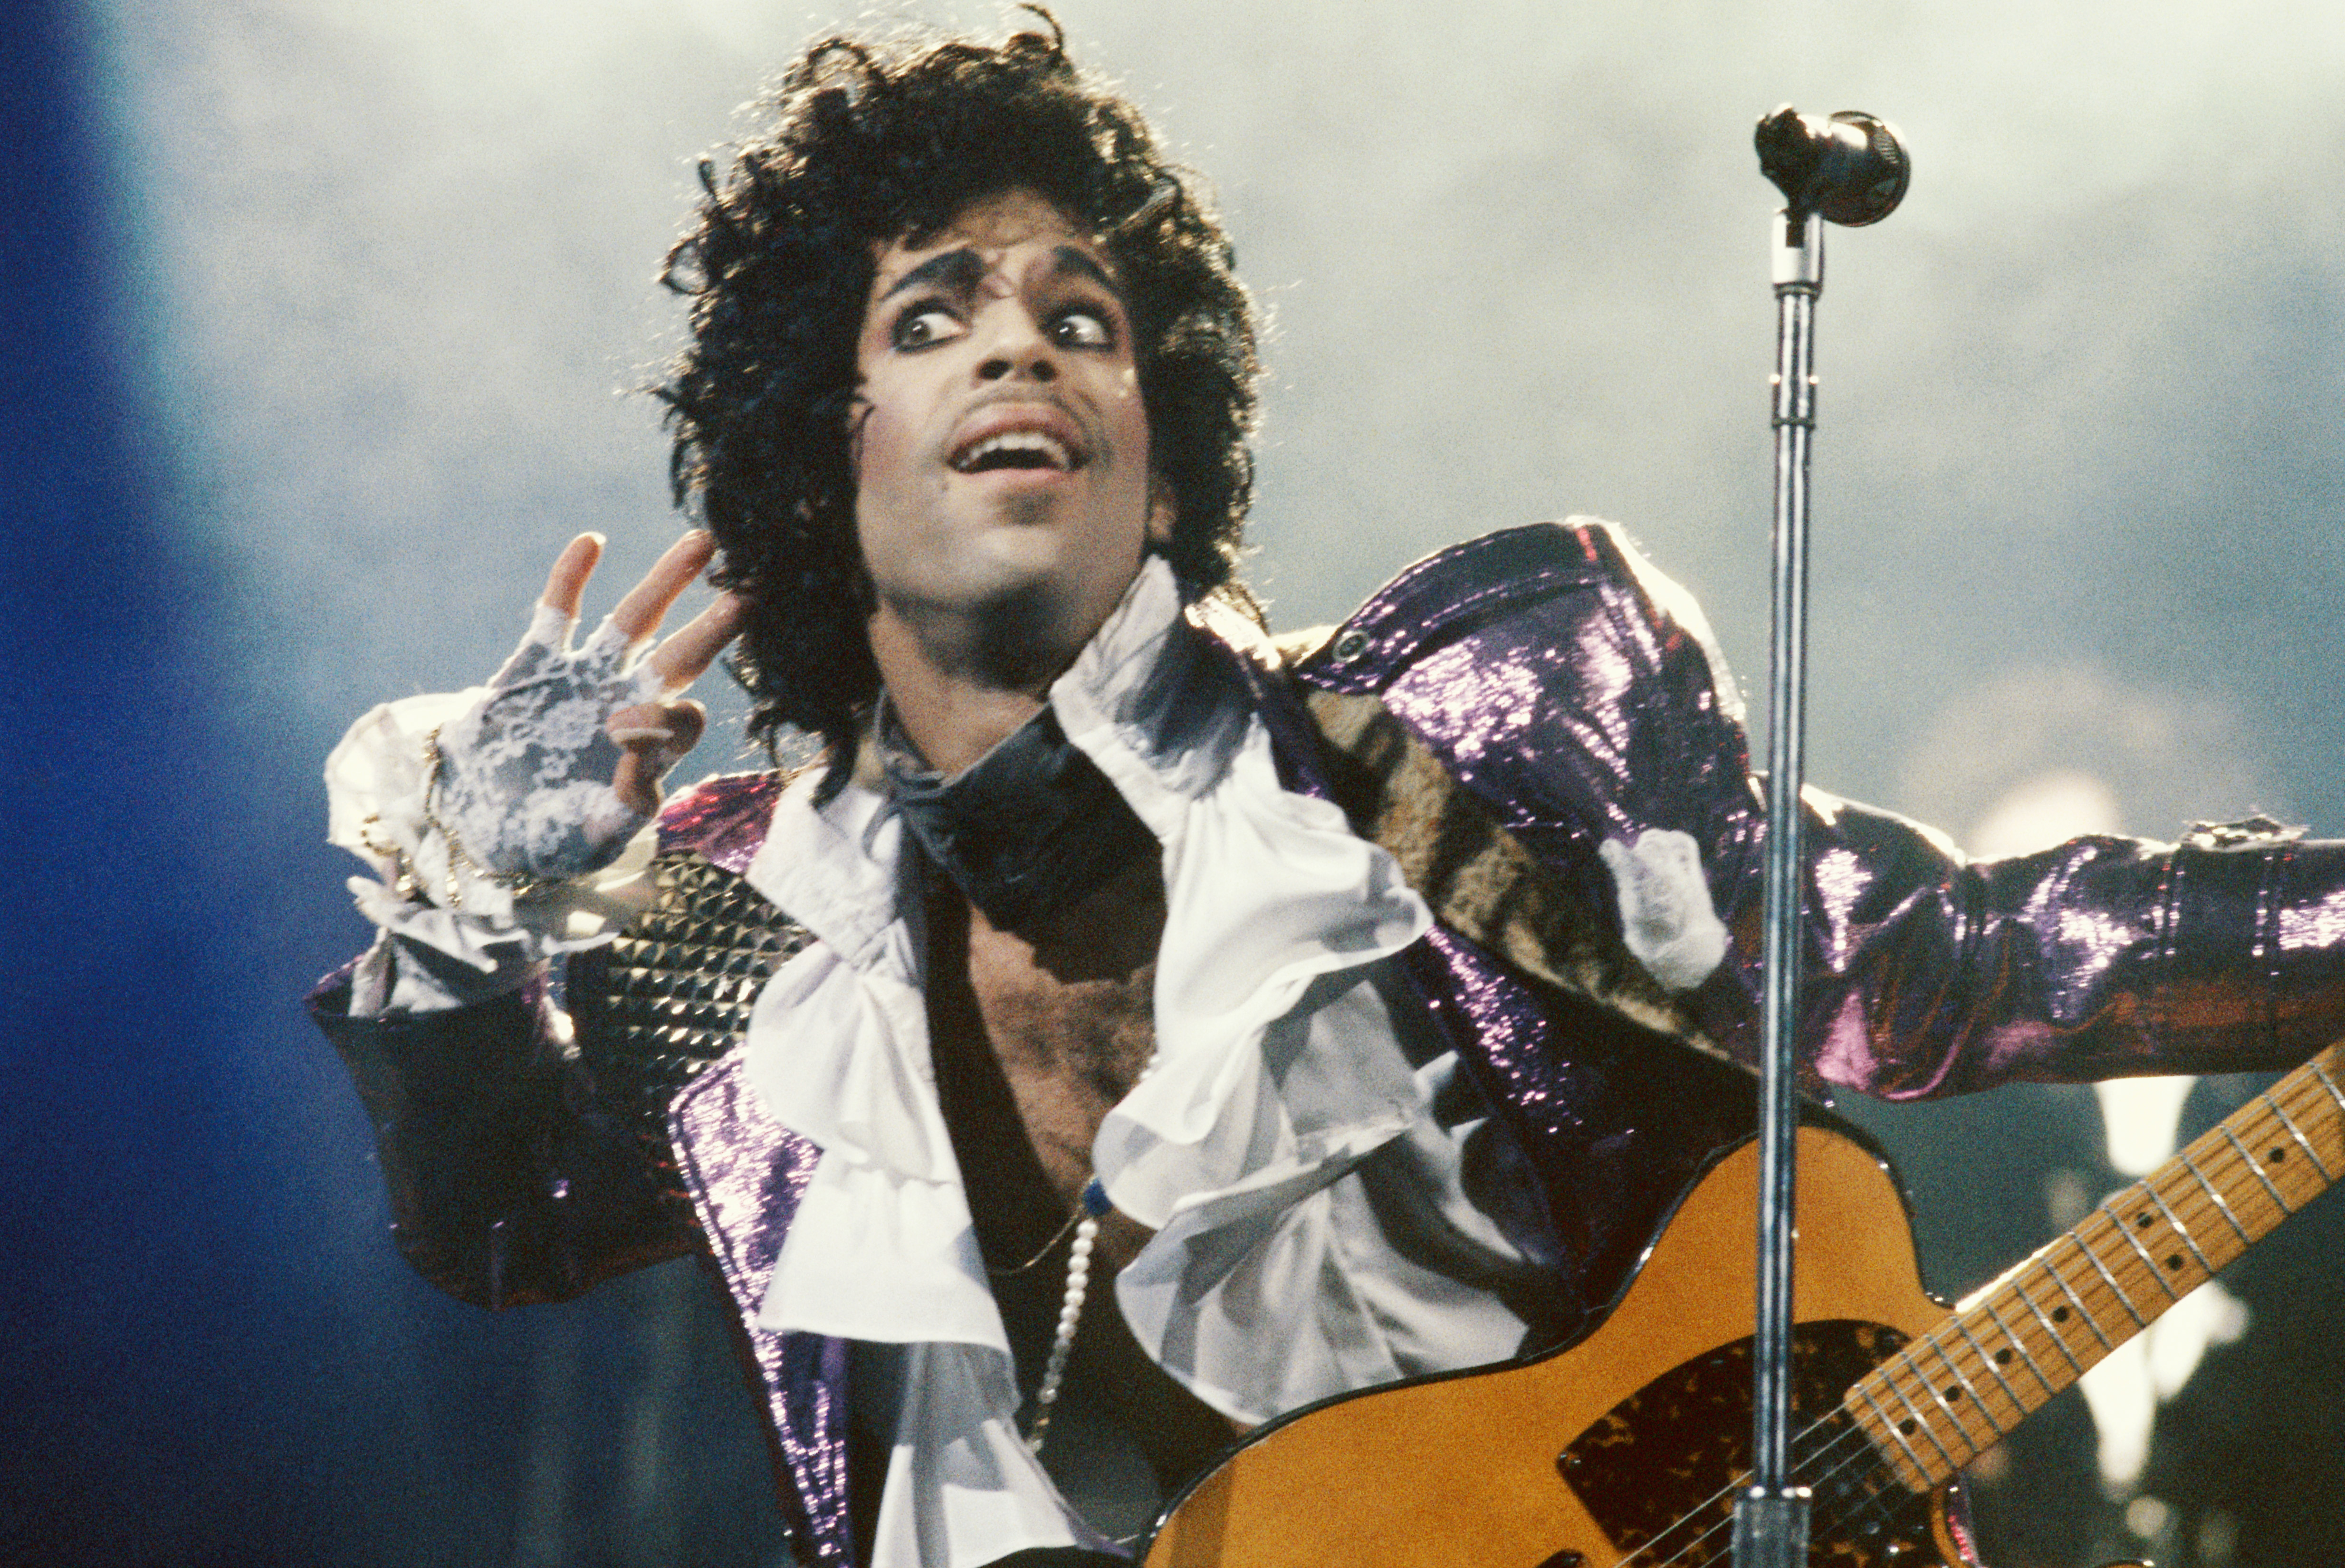 Prince Live In Concert